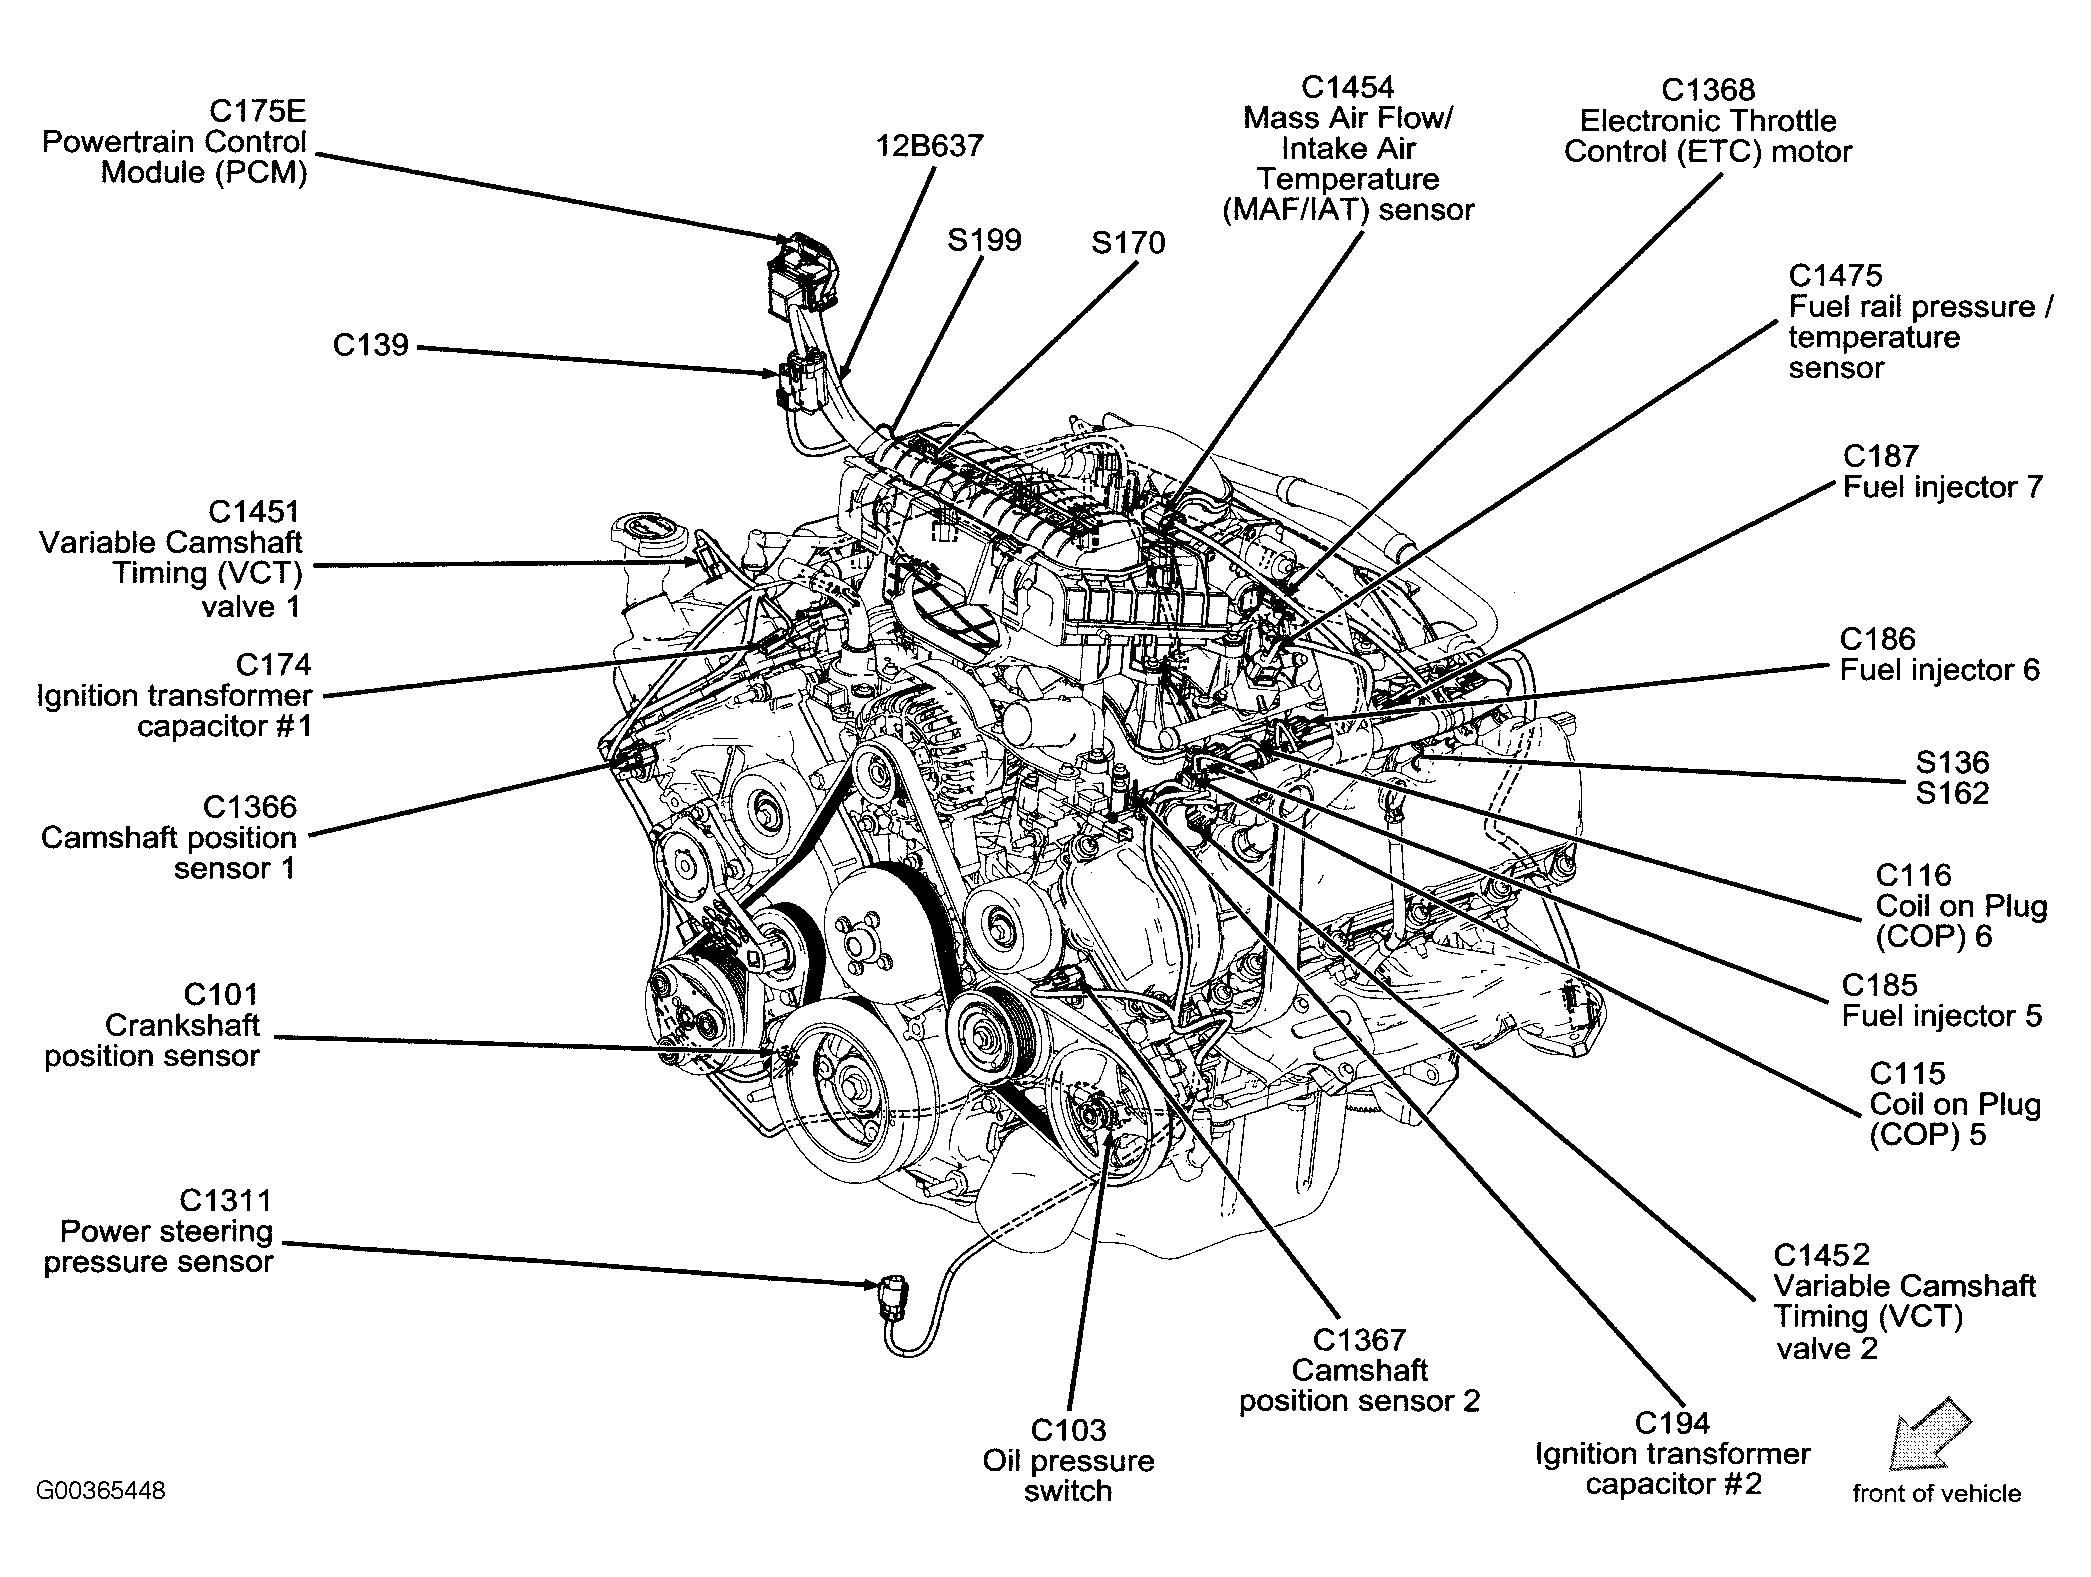 2007 Ford Mustang Engine Diagram | Wiring Diagram  Mustang Wiper Wiring Harness on